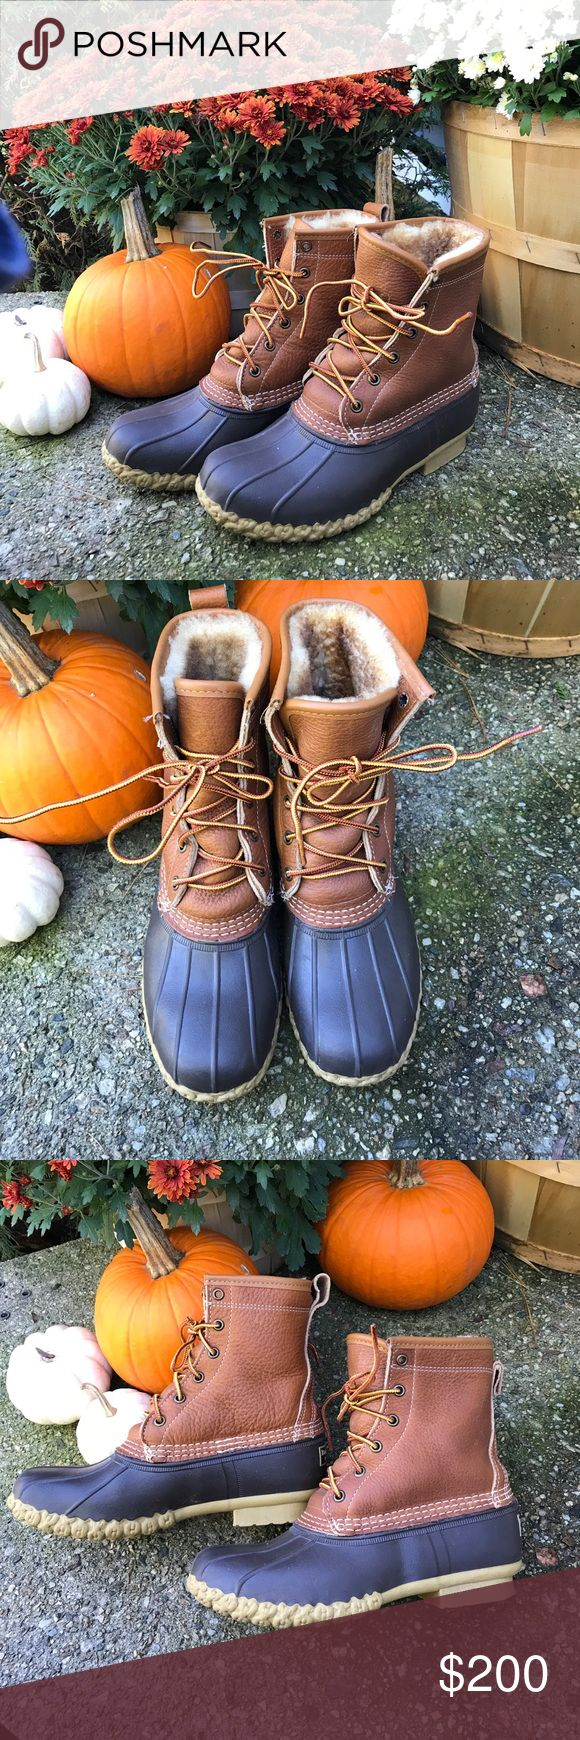 one day saleLL bean shearling lined bean boots LL bean sherling lined bean boots. Worn once and are in excellent condition! Super warm and perfect for fall. Purchased at the LL bean store in Maine. (I loving living one state away from this store!) Comes from a smoke free home. No trades and my price is firm on this listing unless you'd like to make a bundle with other items. Thanks for looking. L.L. Bean Shoes Ankle Boots & Booties